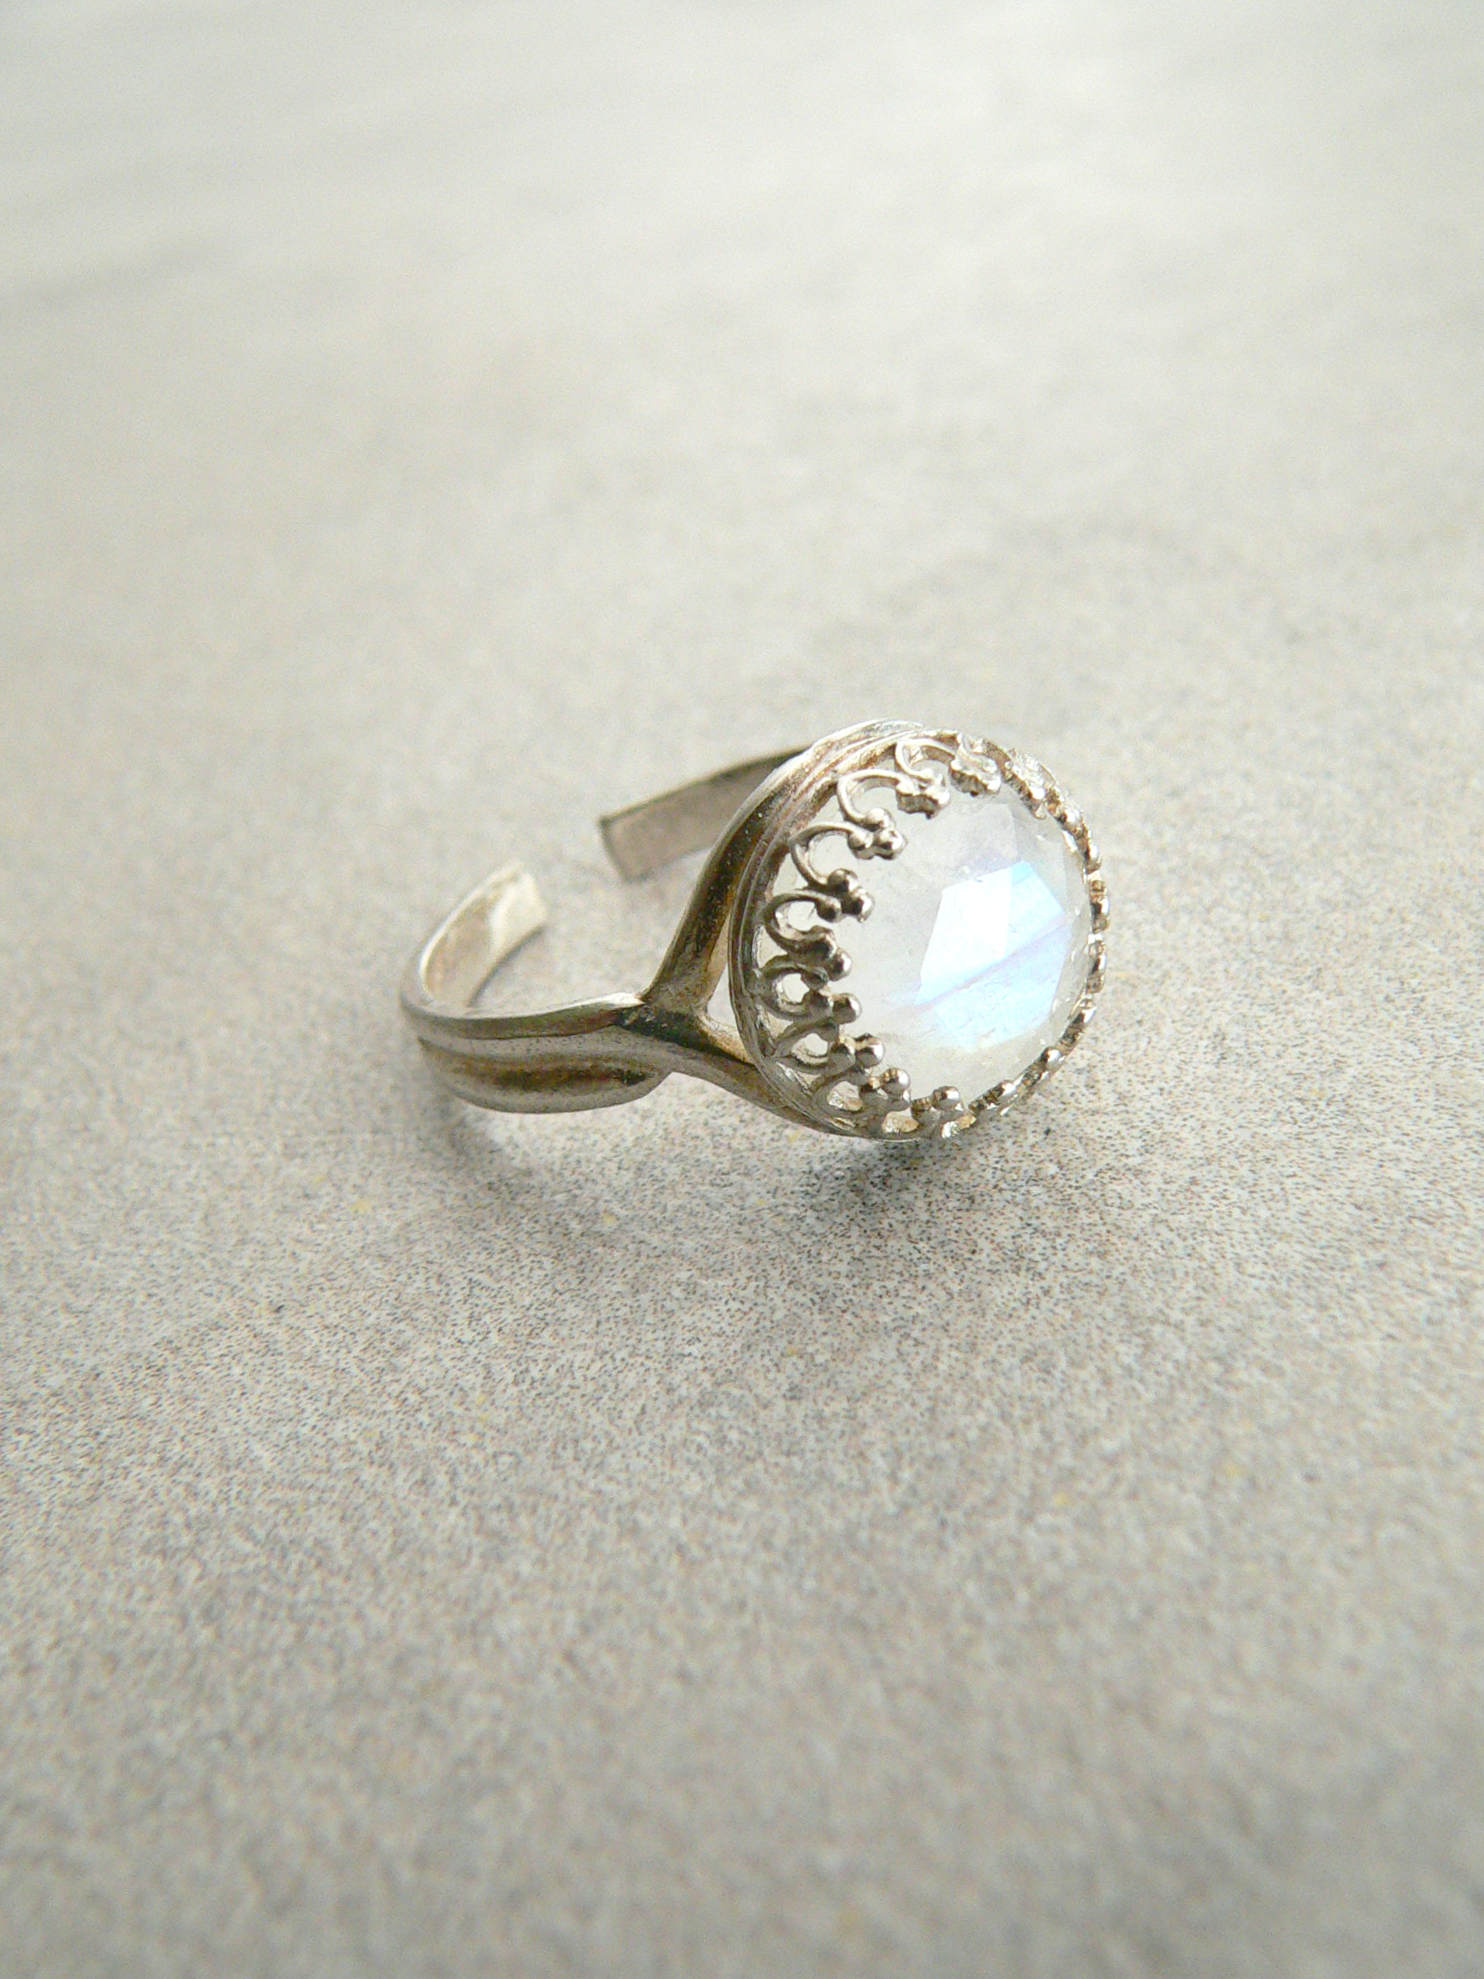 RAINBOW MOONSTONE ADJUSTABLE RING